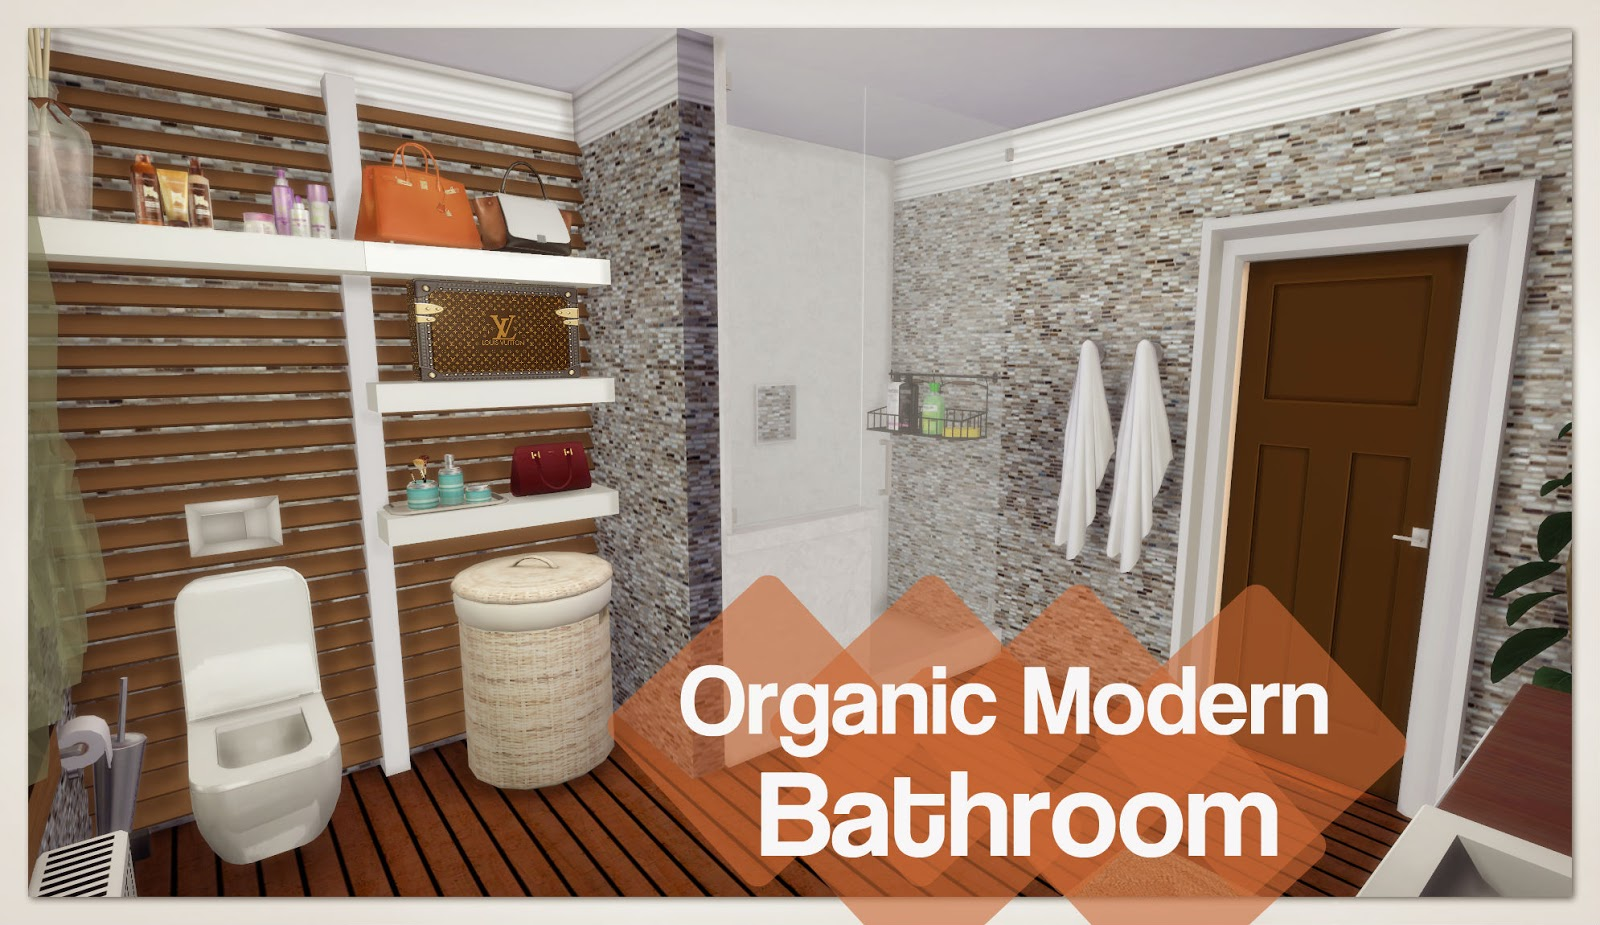 Sims 4 organic modern bathroom room mods for download for Bathroom ideas sims 4